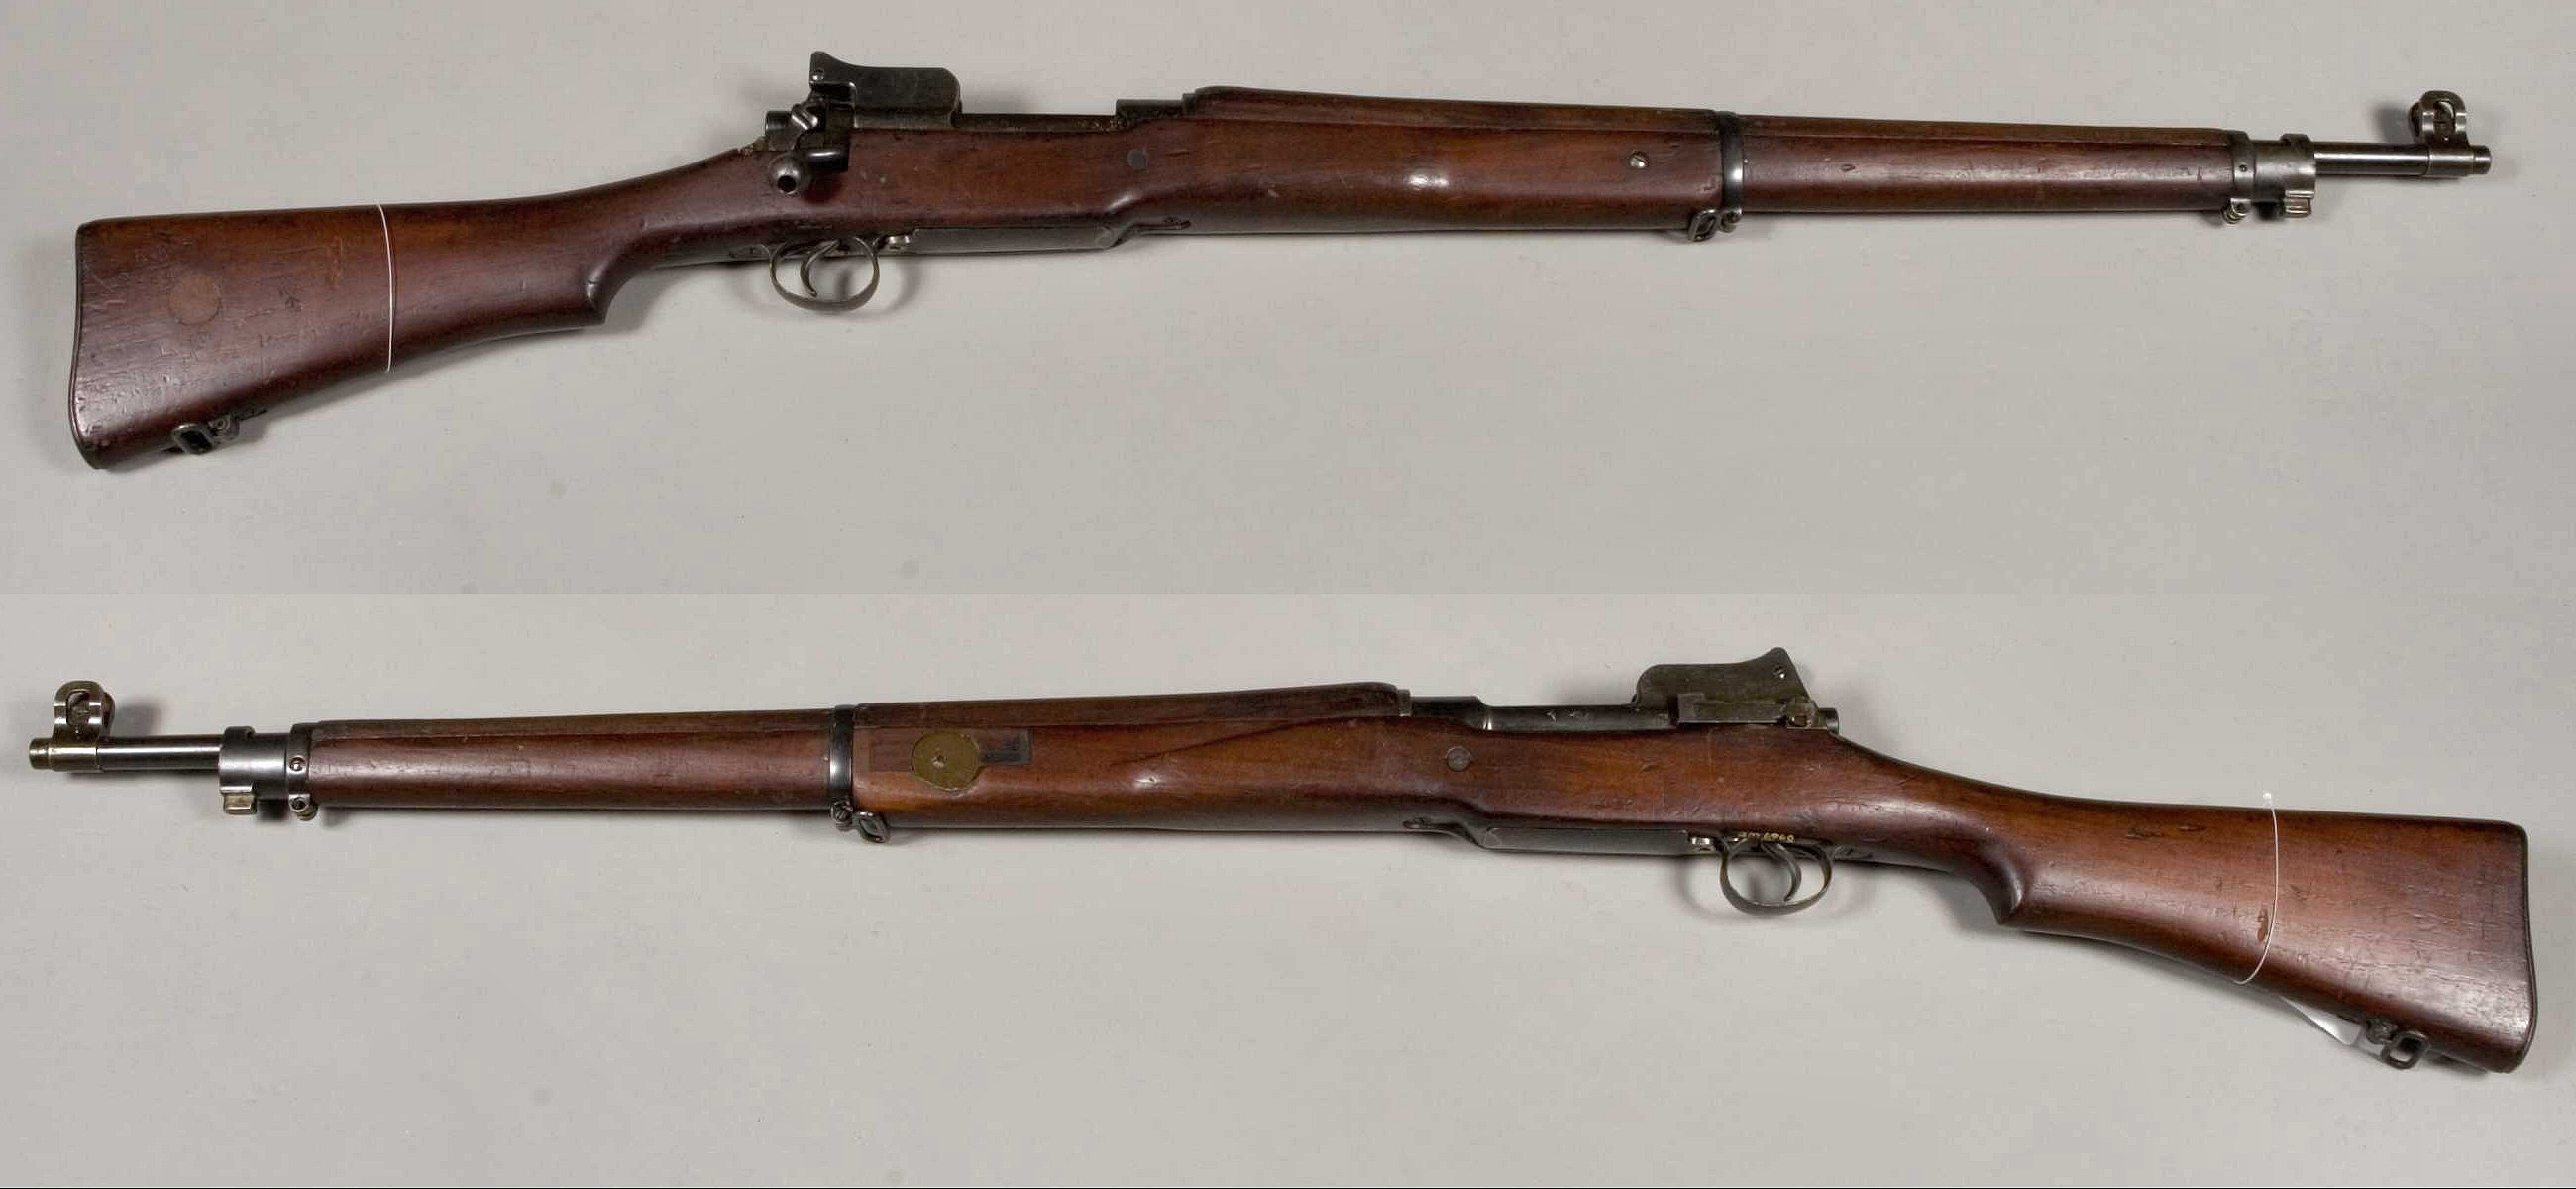 Rifle_Pattern_1914_Enfield_-_AM.006960.jpg